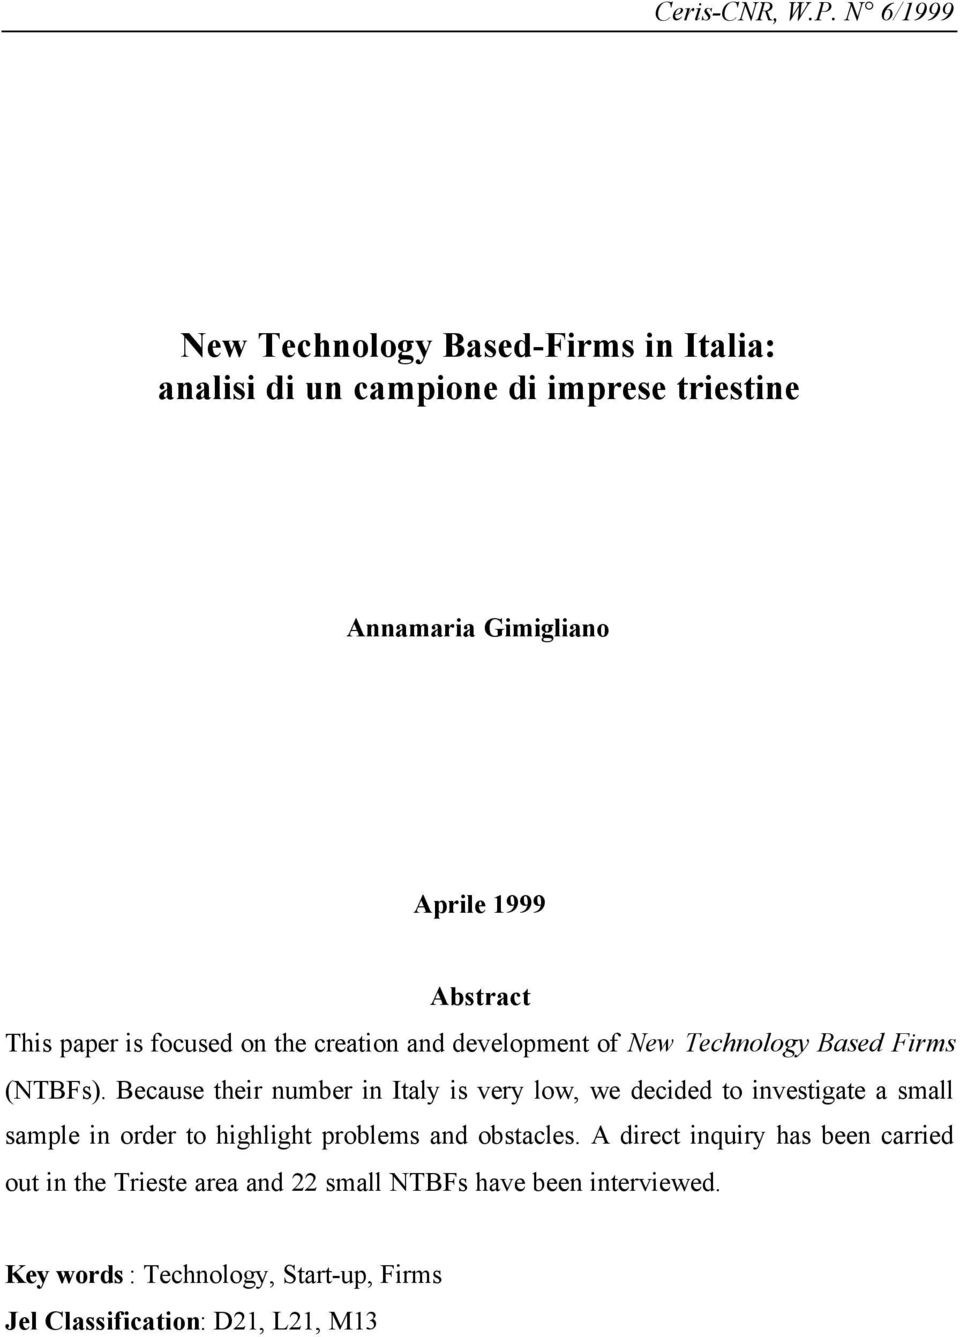 This paper is focused on the creation and development of New Technology Based Firms (NTBFs).